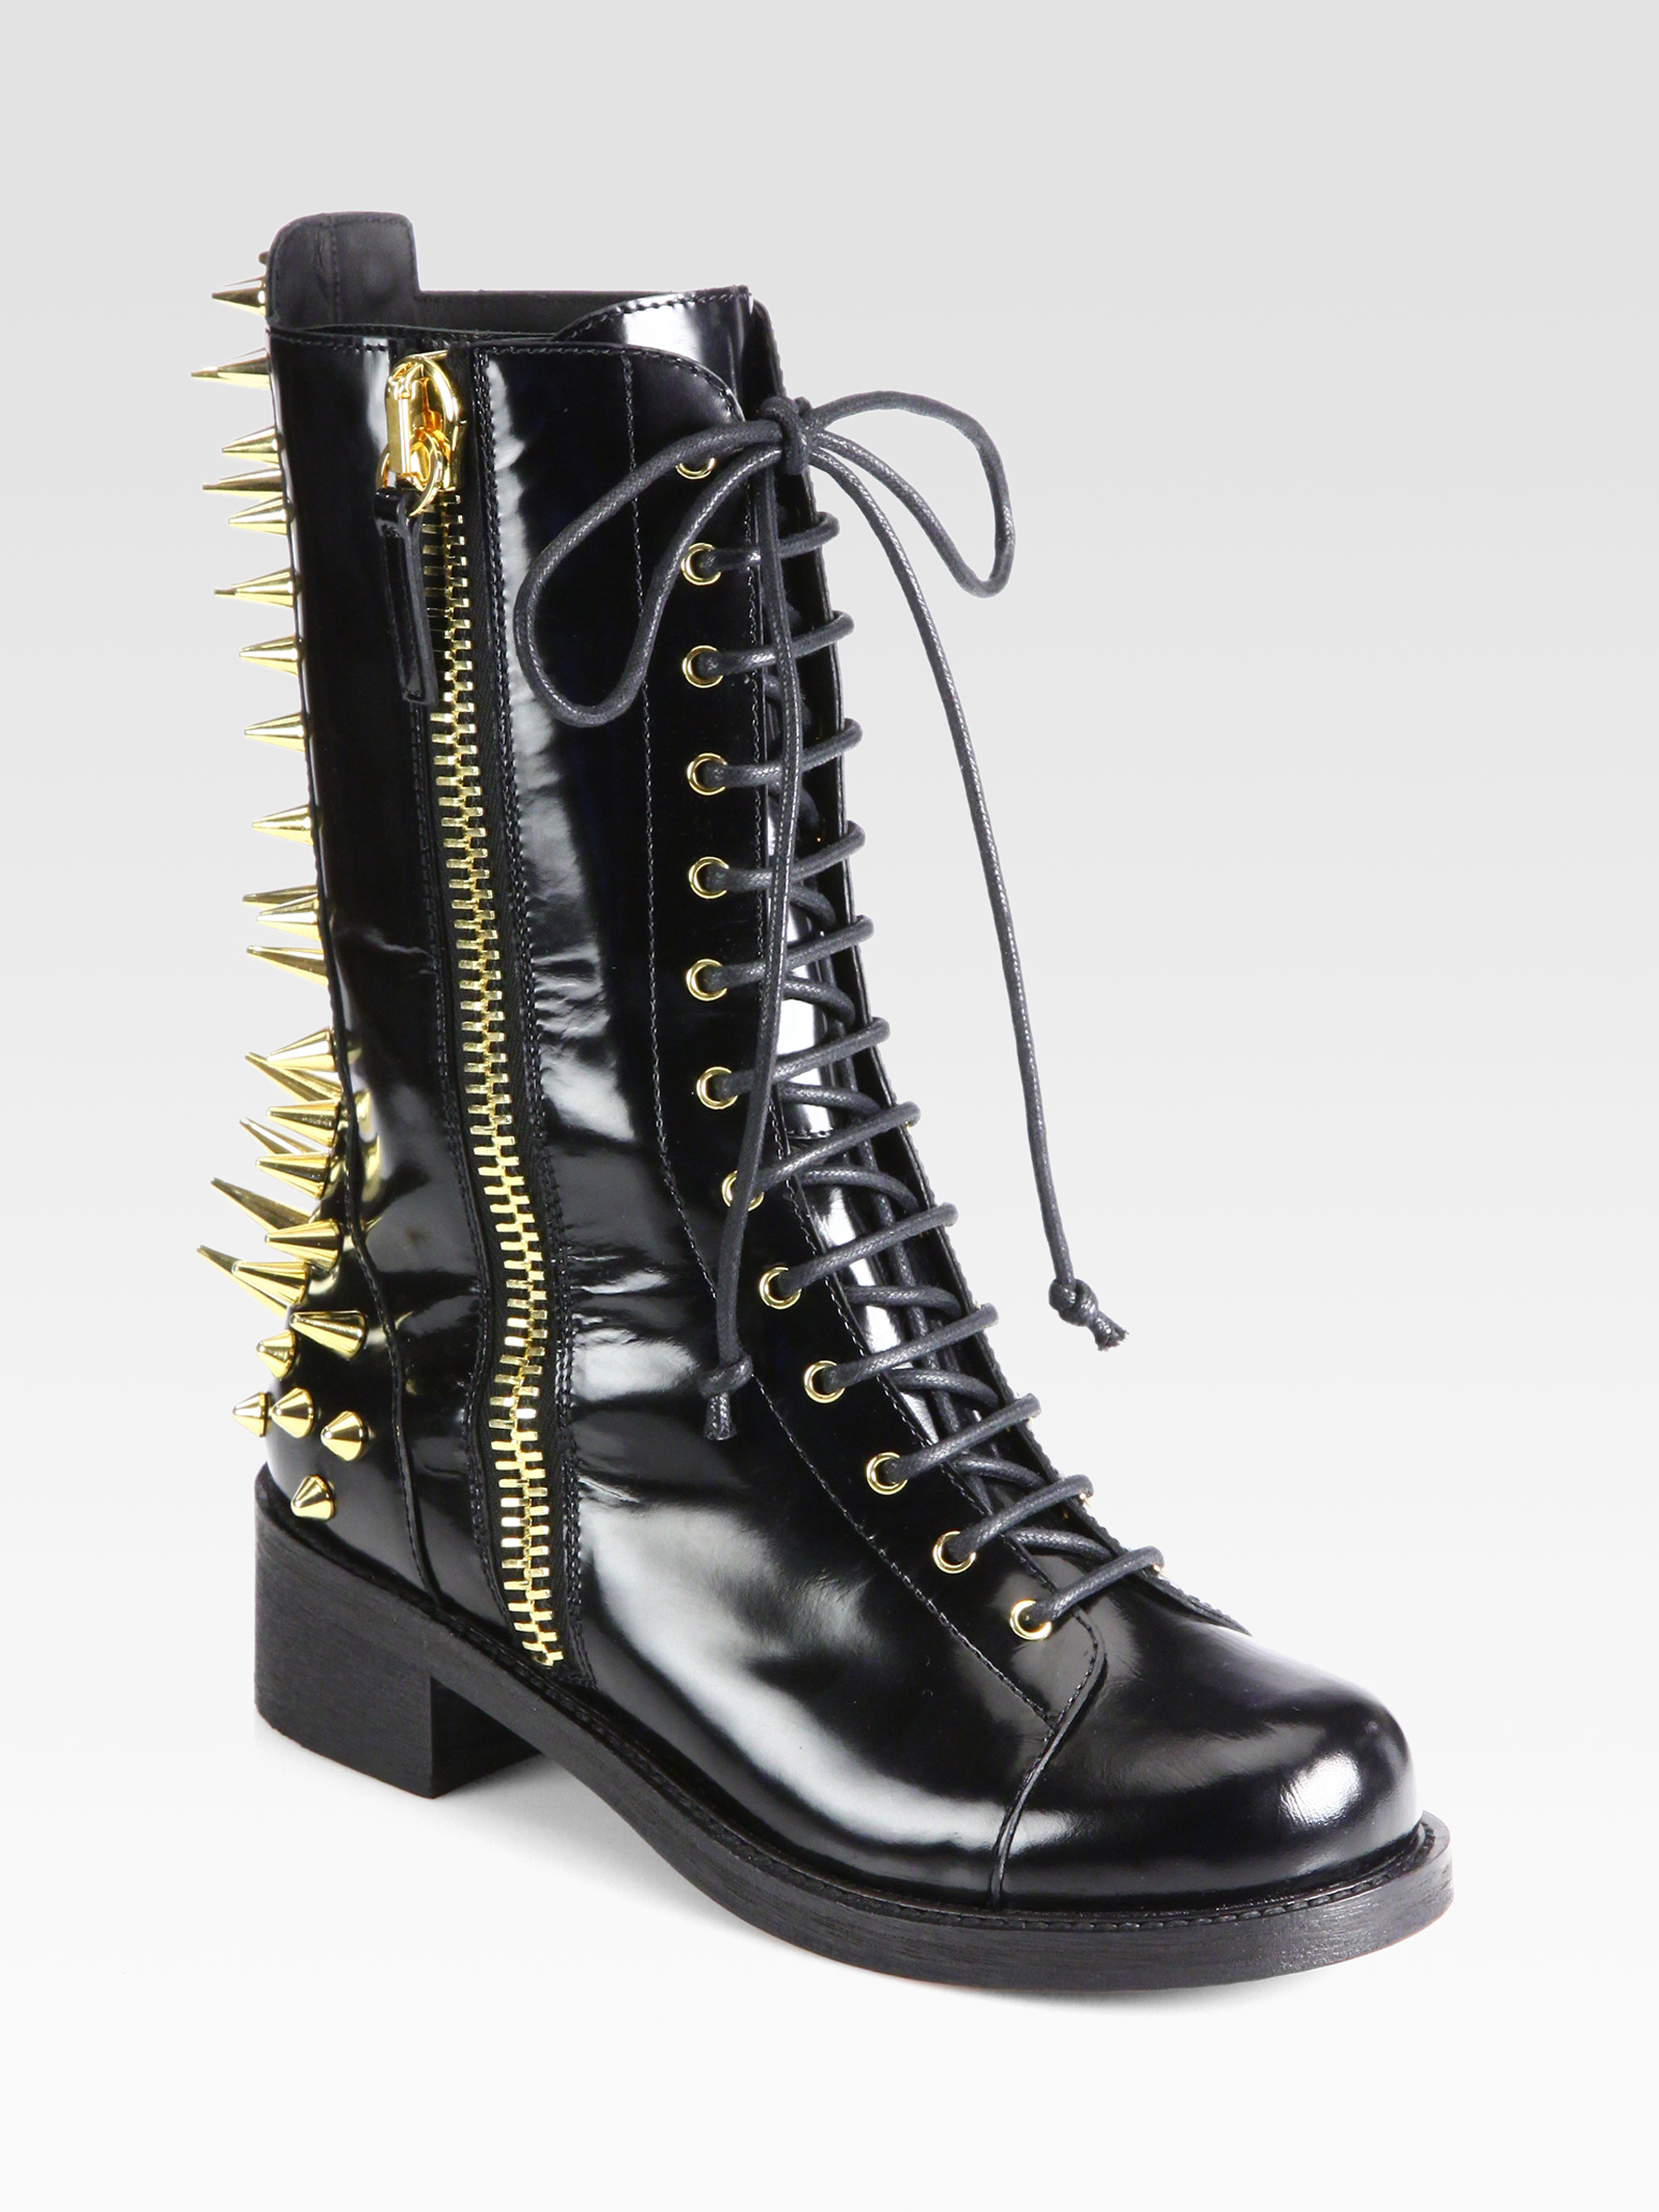 Giuseppe Zanotti Studded Leather Combat Boots In Black Lyst